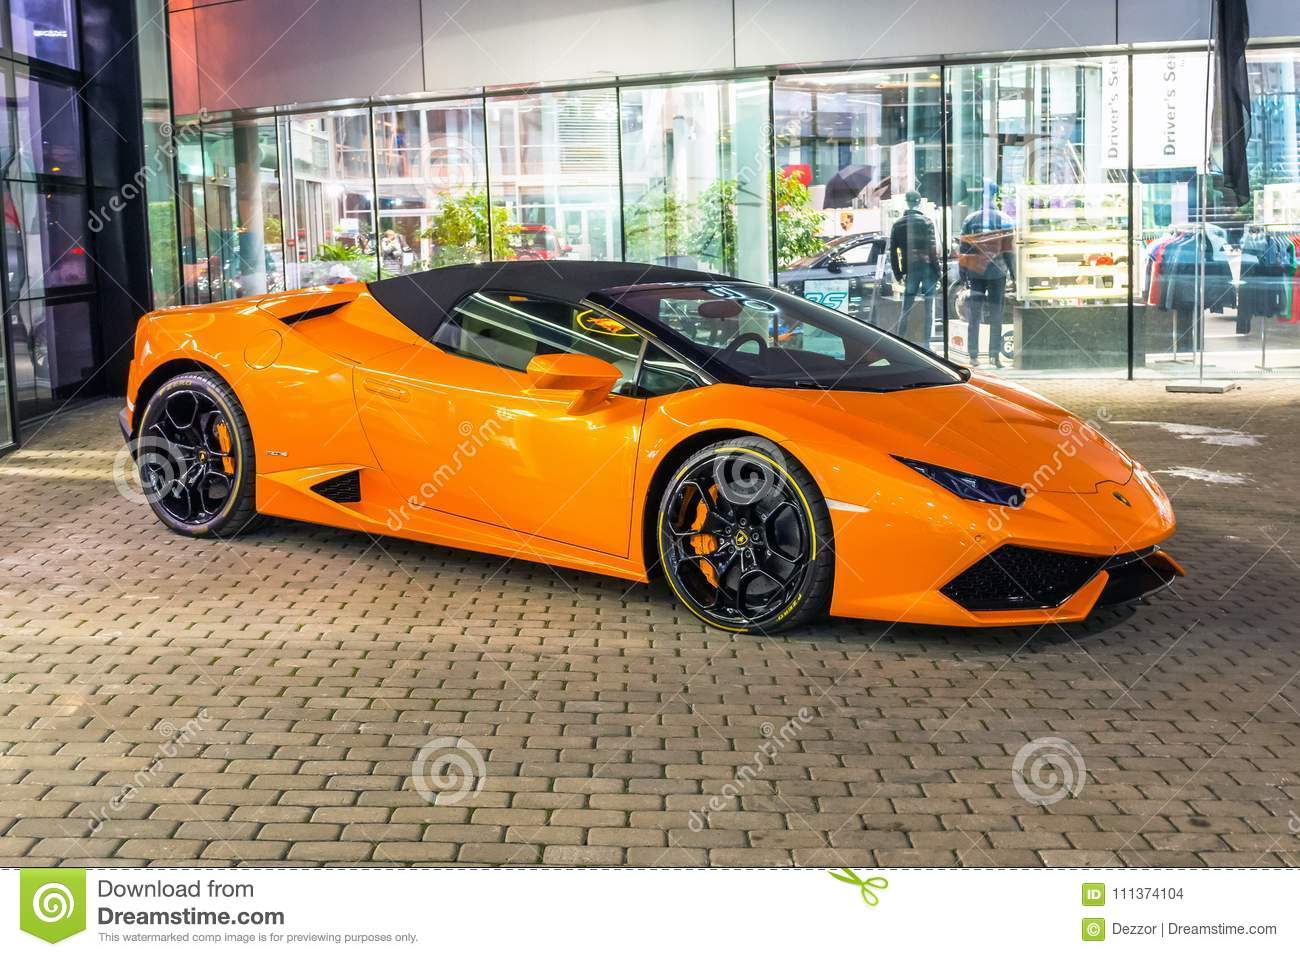 Lamborghini Aventador Orange >> Supercar Lamborghini Aventador Orange Color Parked At The